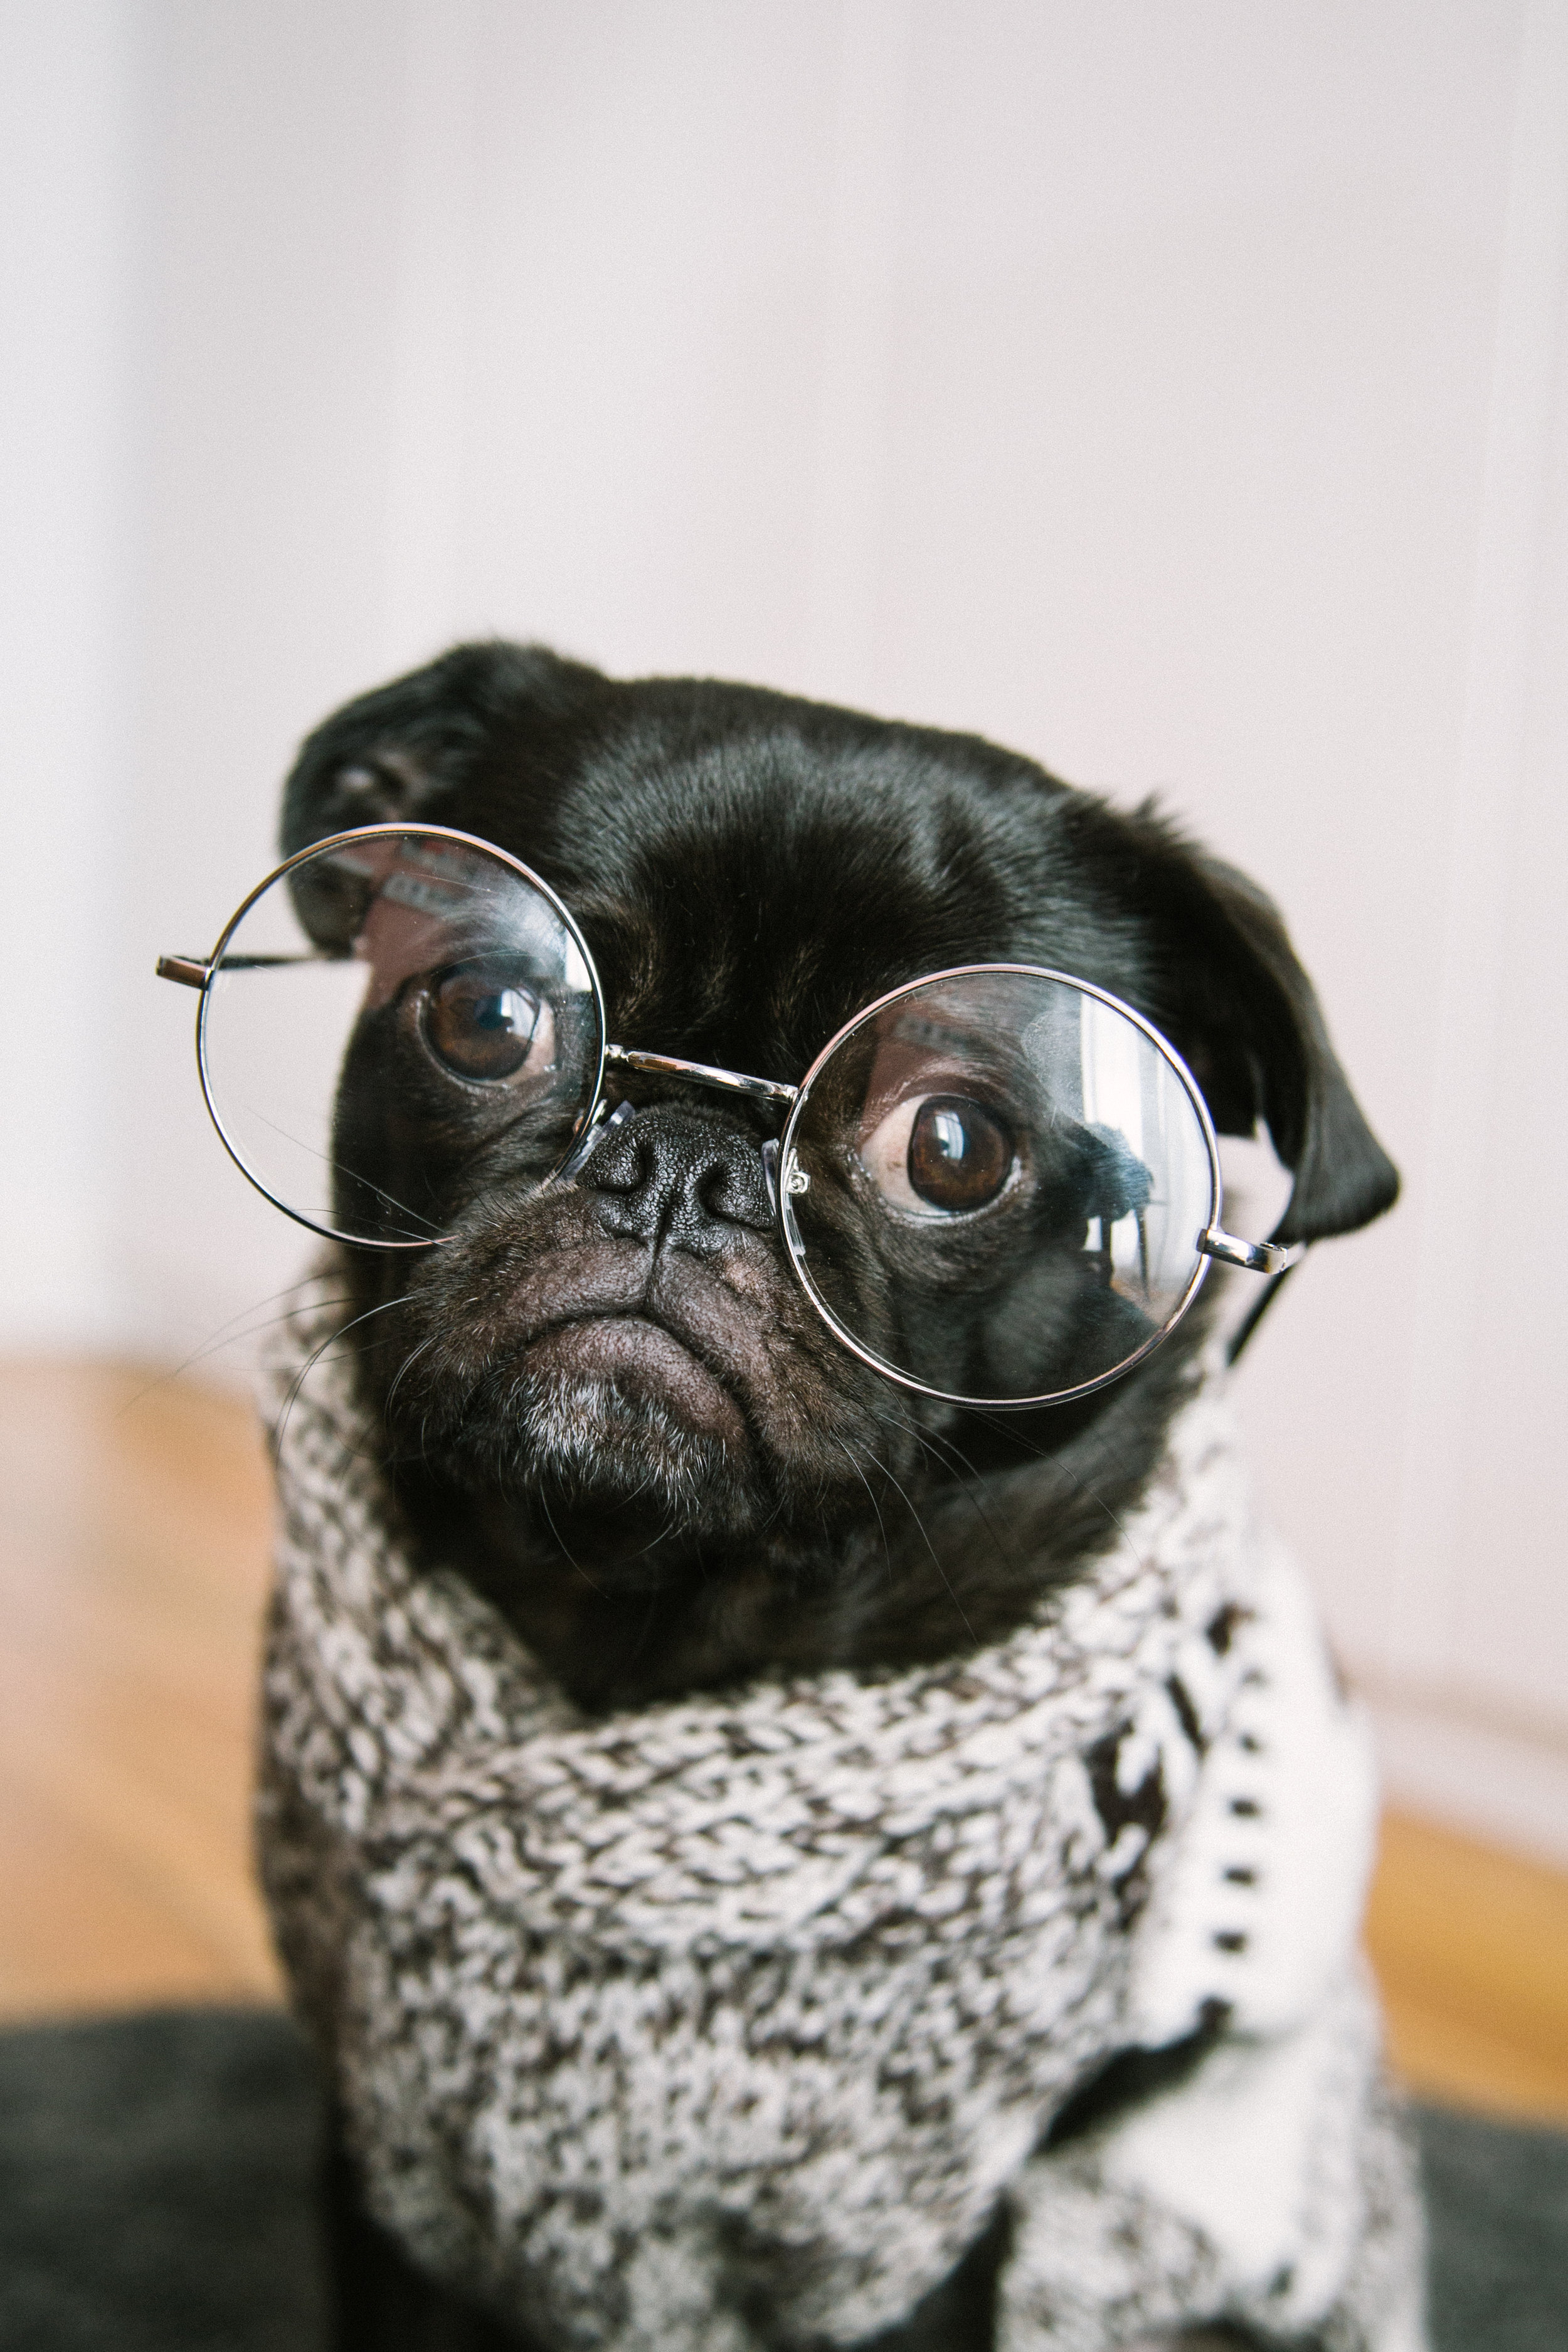 Where are my reading glasses?